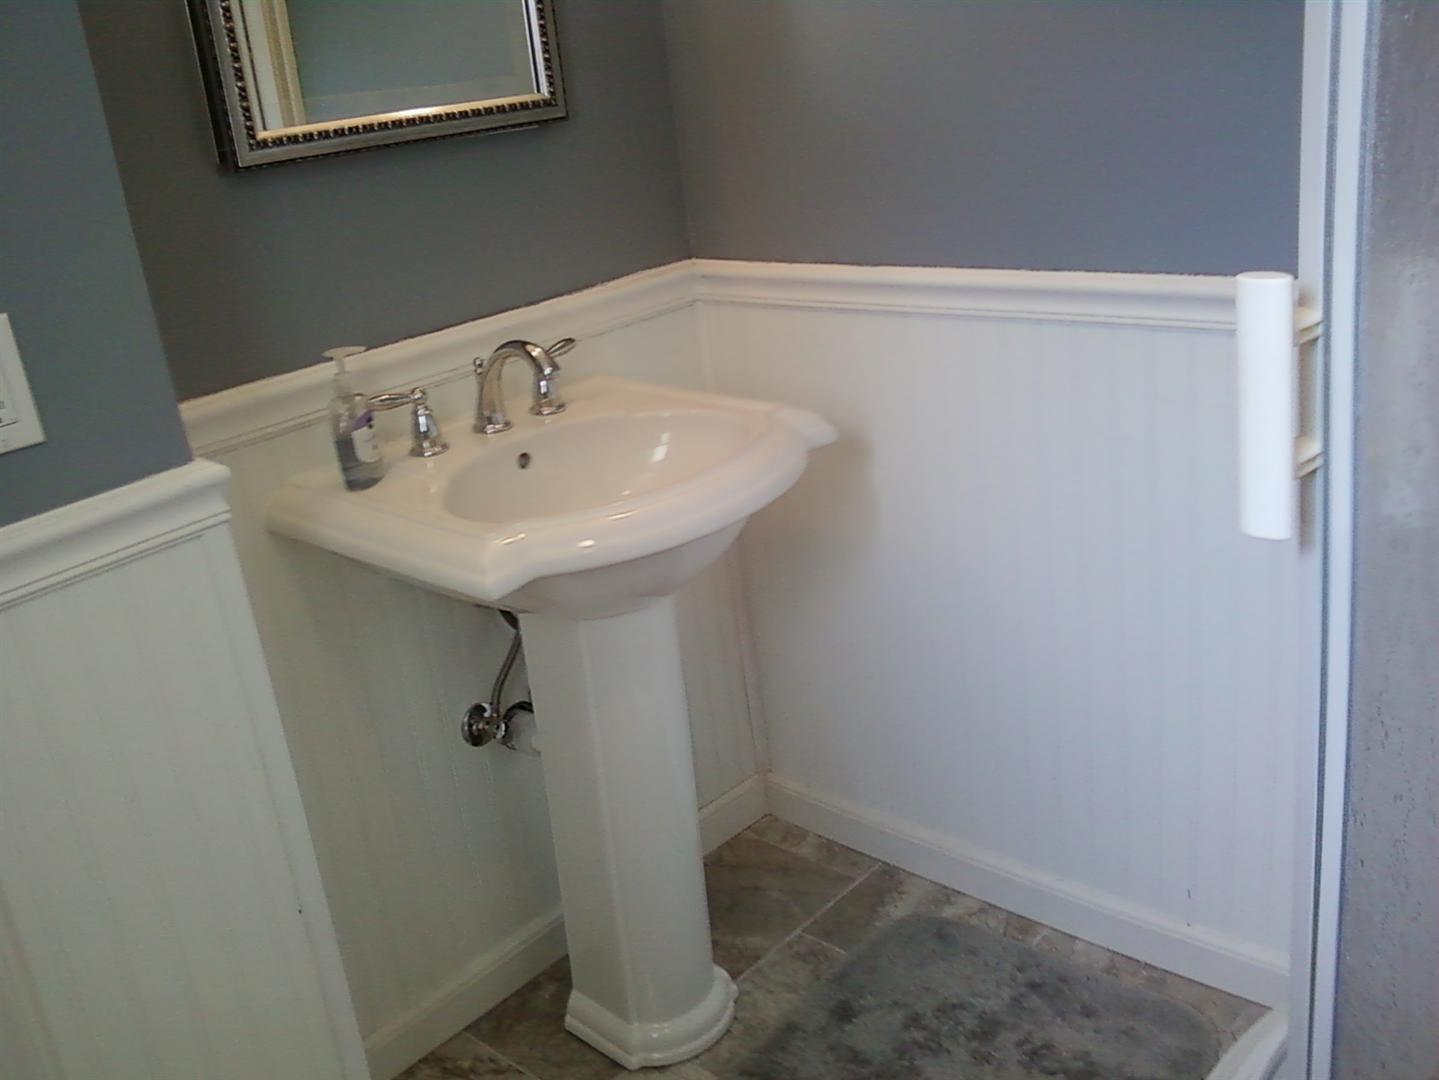 Call M Amp M Construction Specialist At 908 378 5951 To